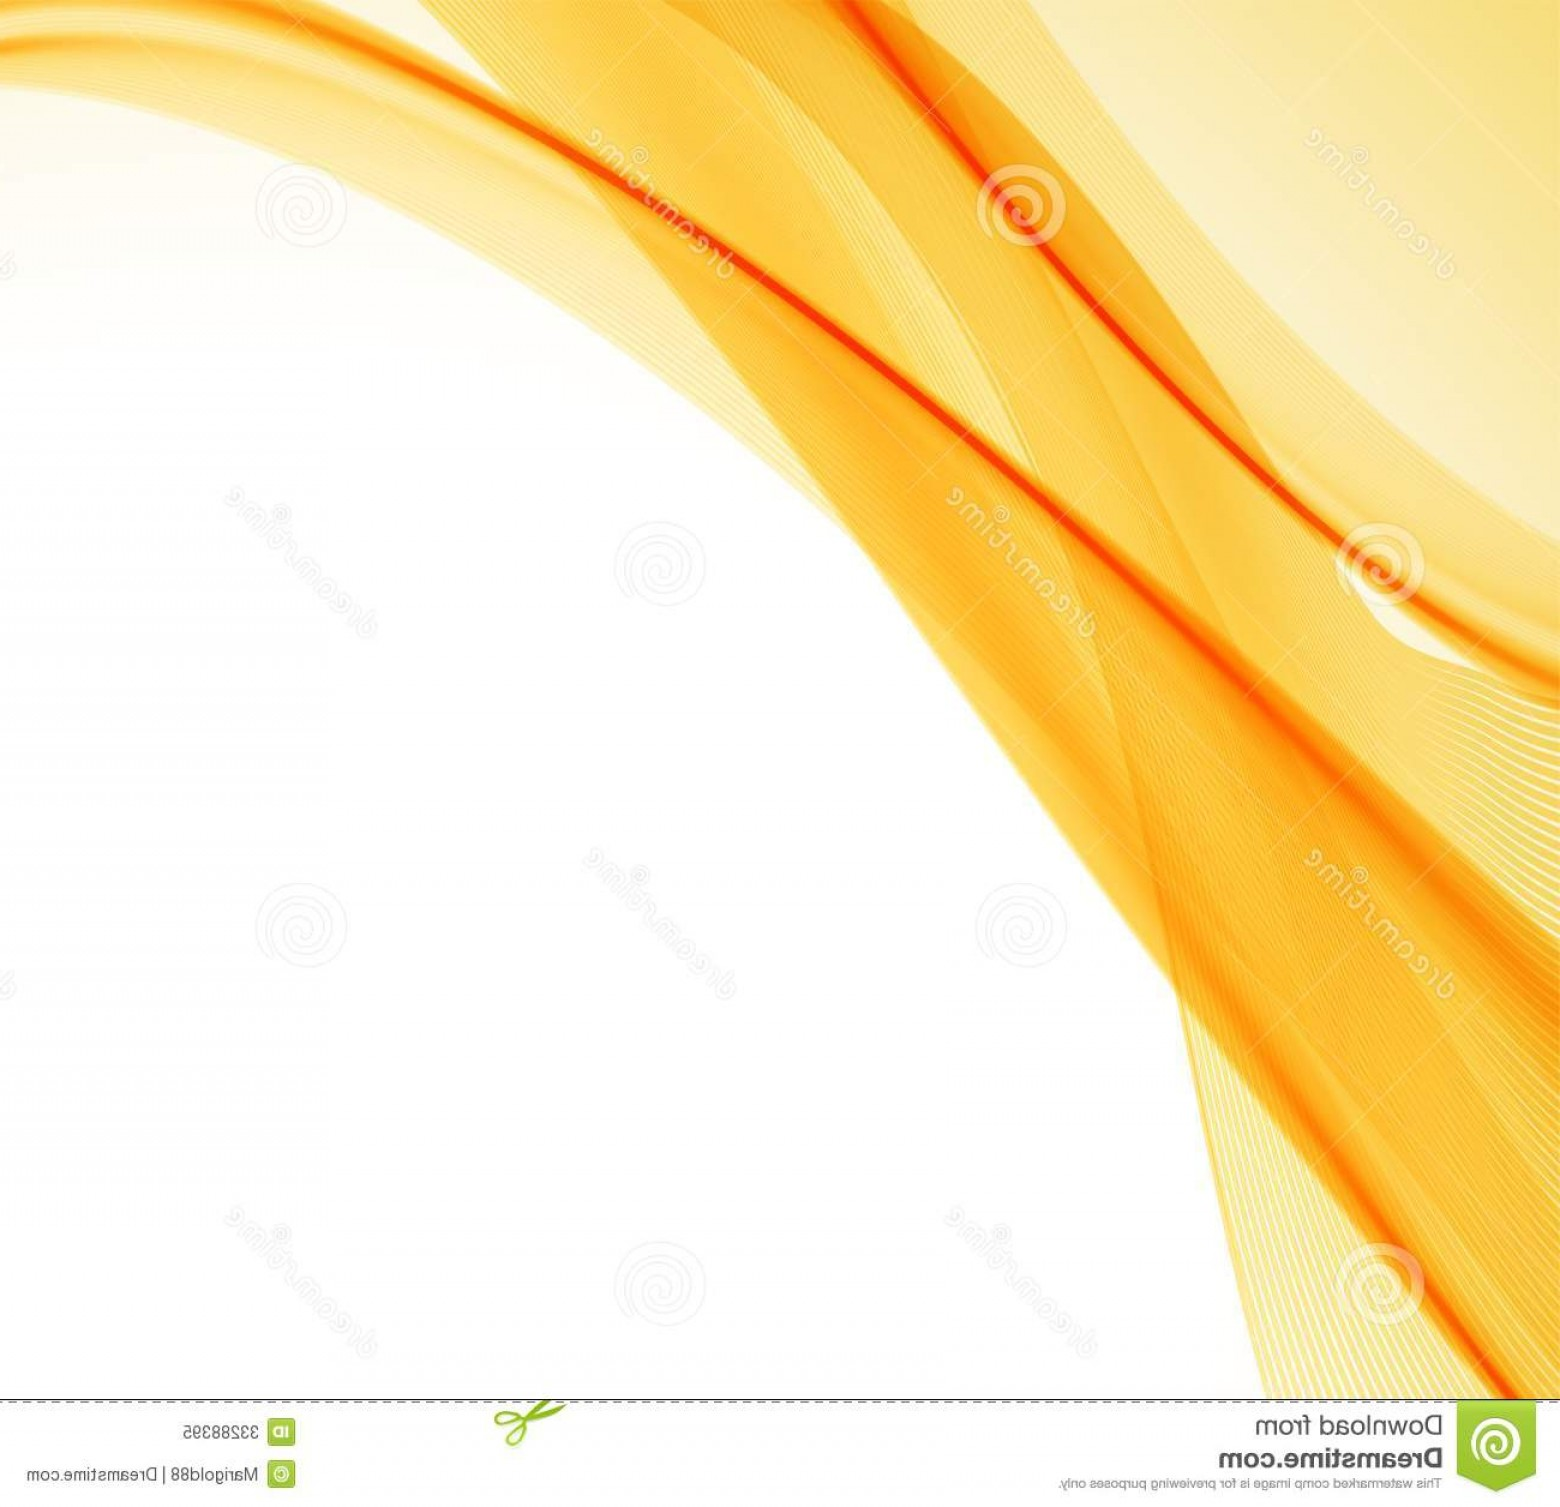 White Orange Vector: Royalty Free Stock Photo Abstract Orange Yellow White Background Vector Illustration Image